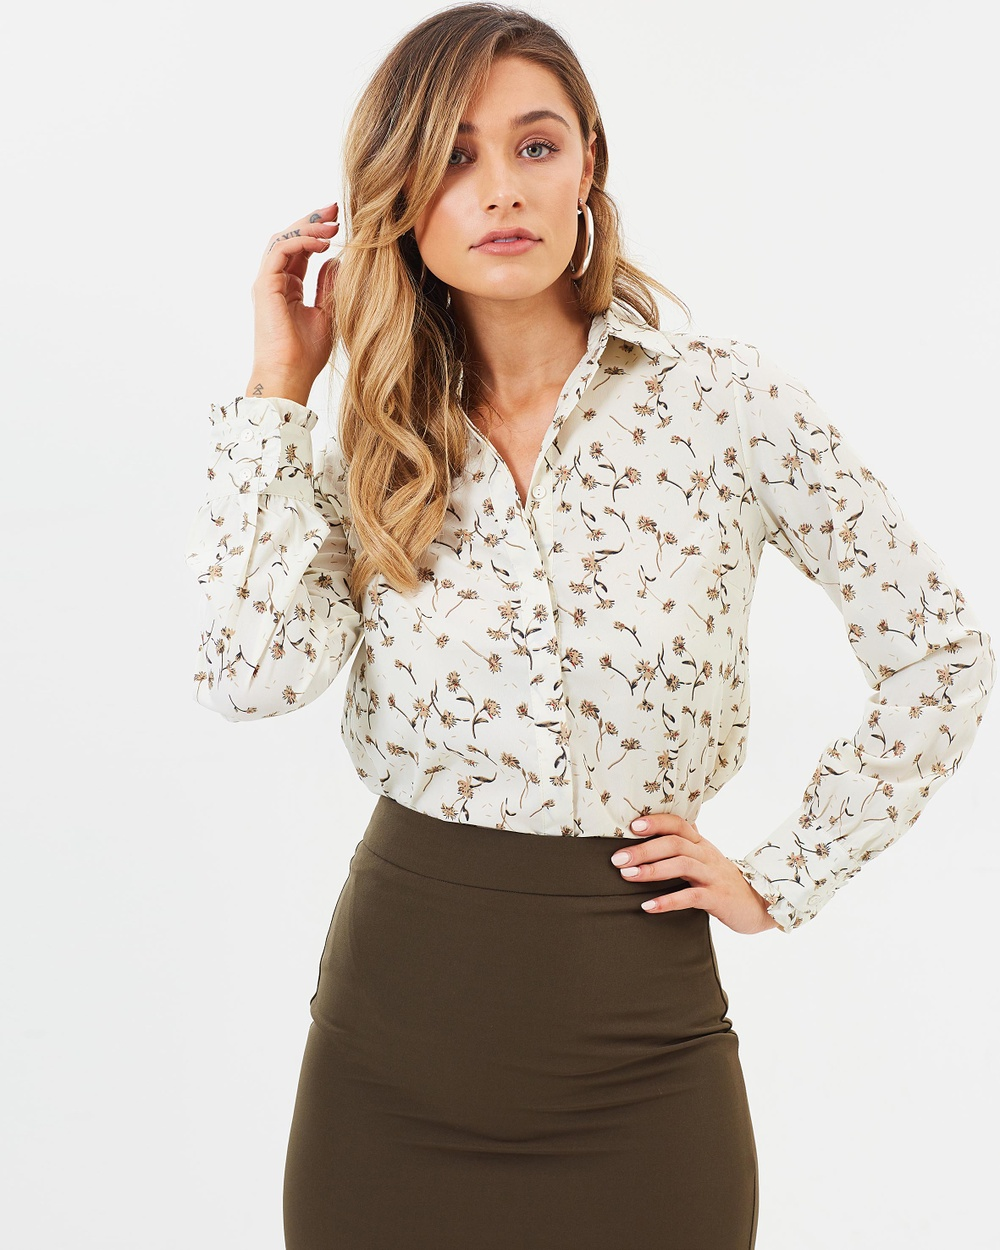 Forcast Chiara Button Up Shirt Tops Beige Chiara Button Up Shirt